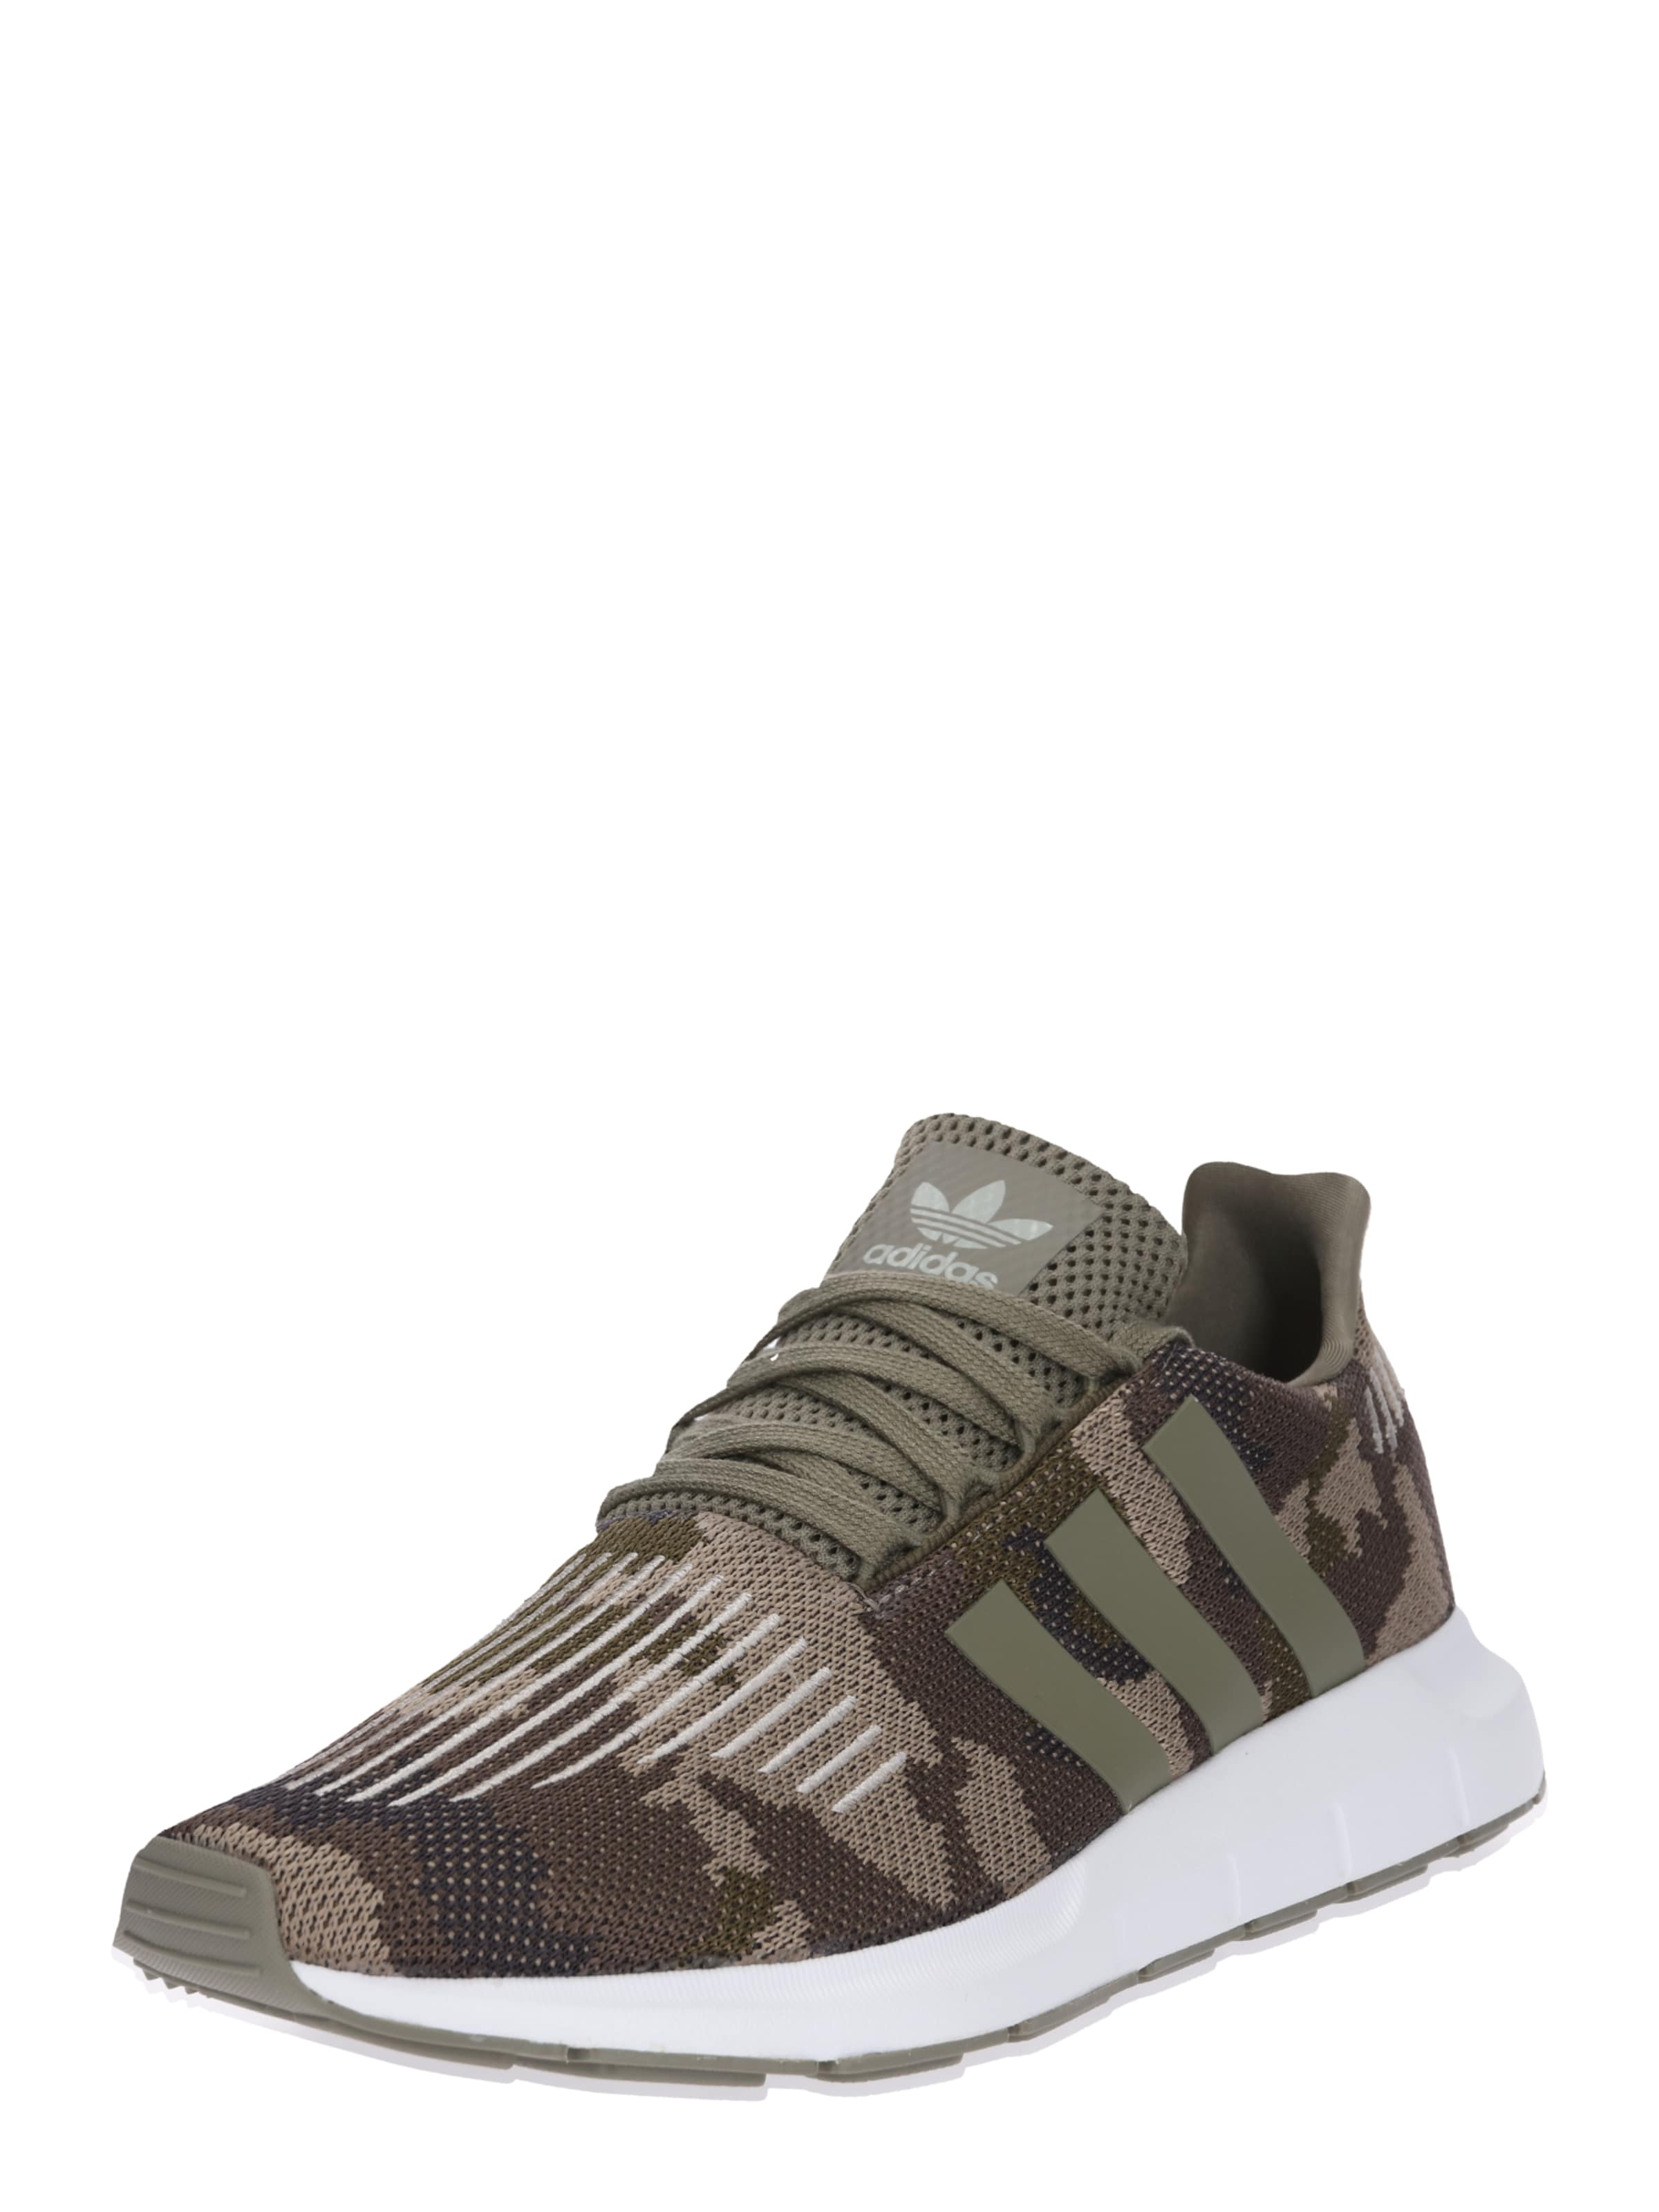 'swift Sneaker Originals In Run' HellbeigeKhaki Adidas oredBCx